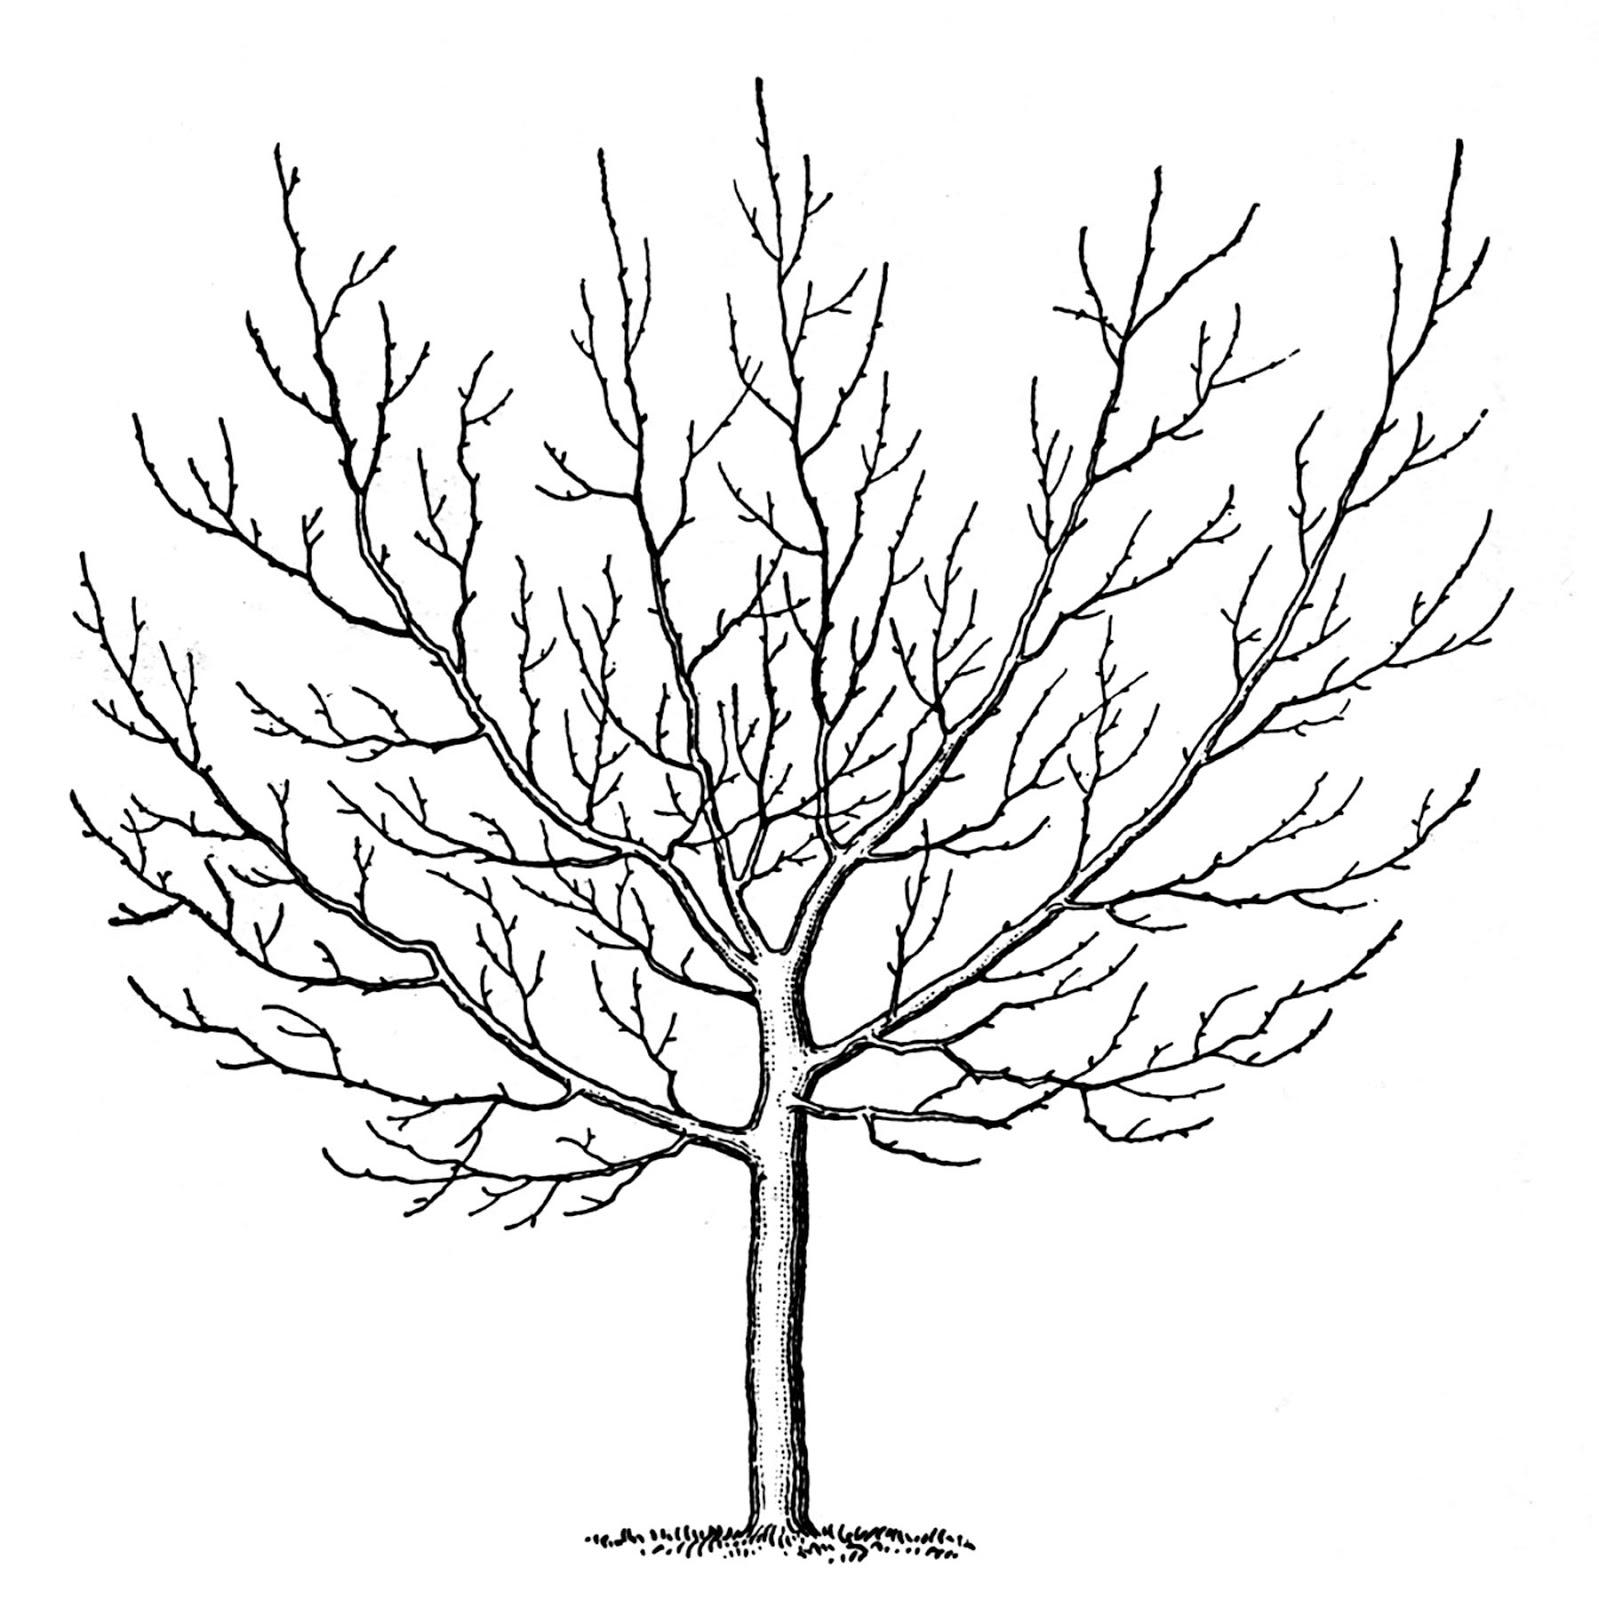 Aspen Tree Drawing At Getdrawings Com Free For Personal Use Aspen